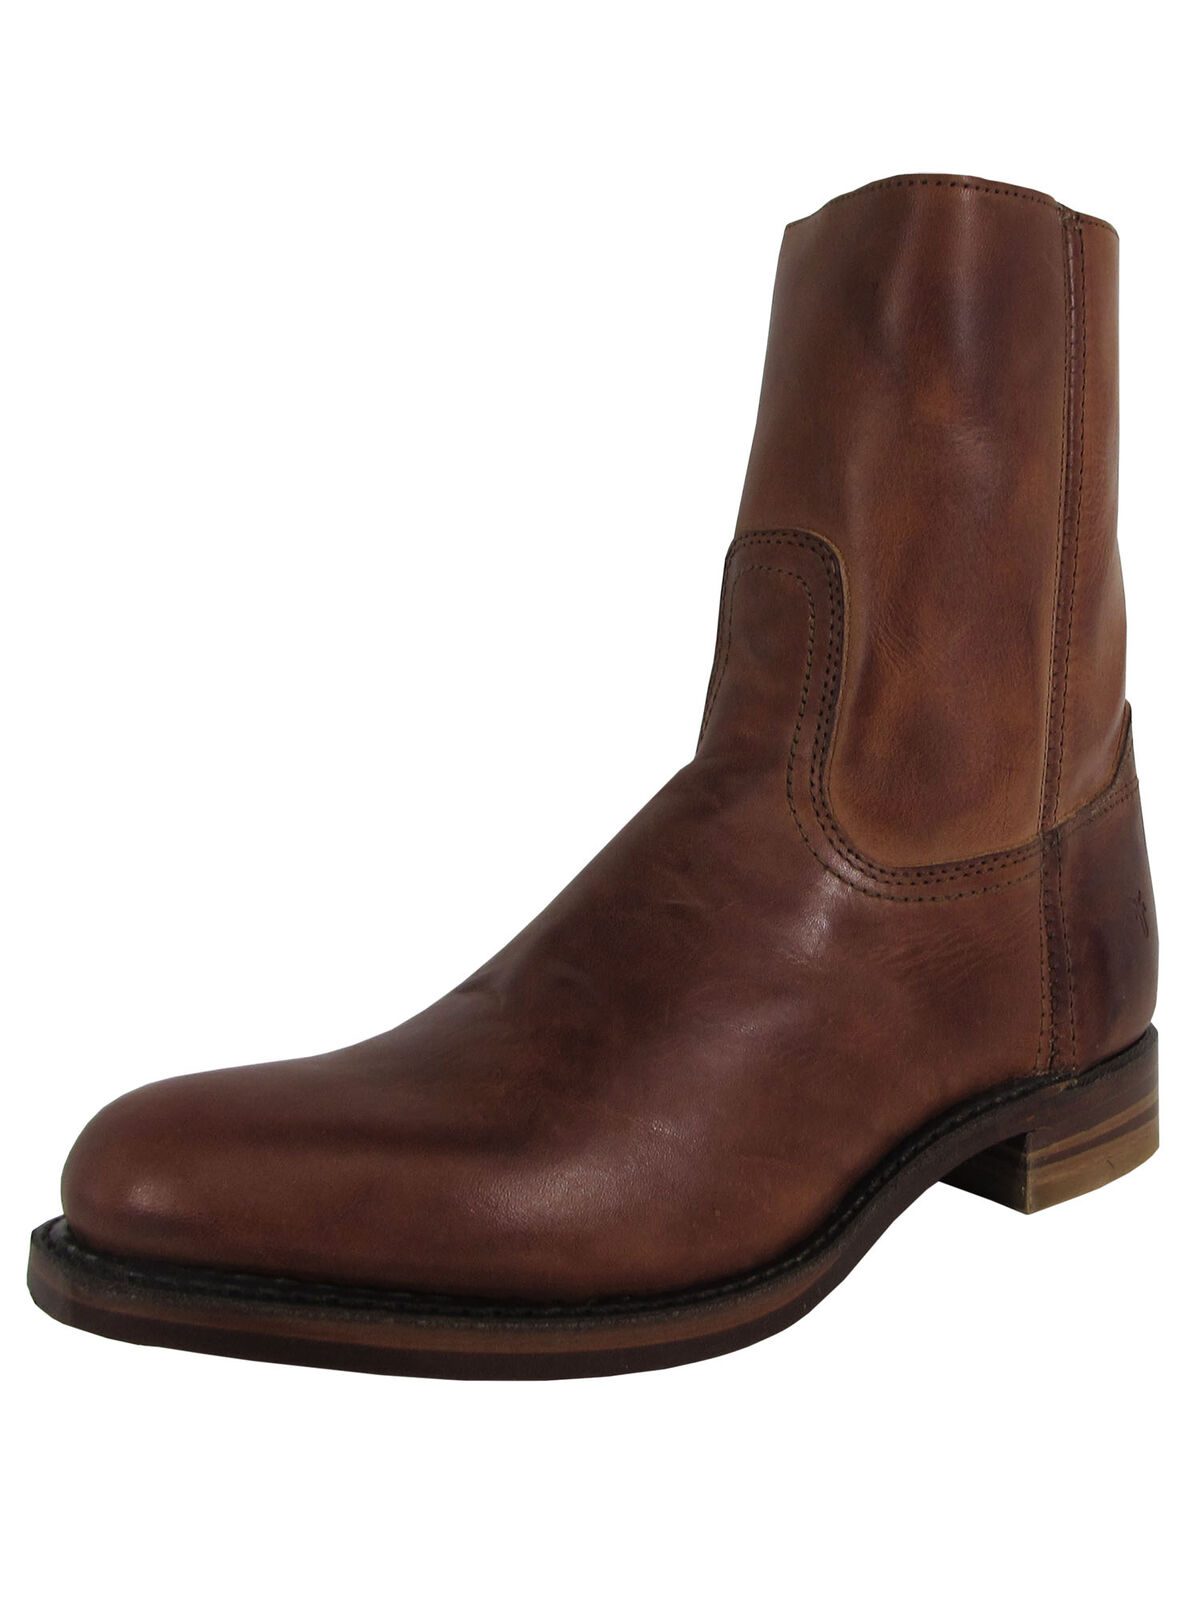 Frye Mens Campus Inside Zip Up Round Toe Boots, Brown, US 8.5